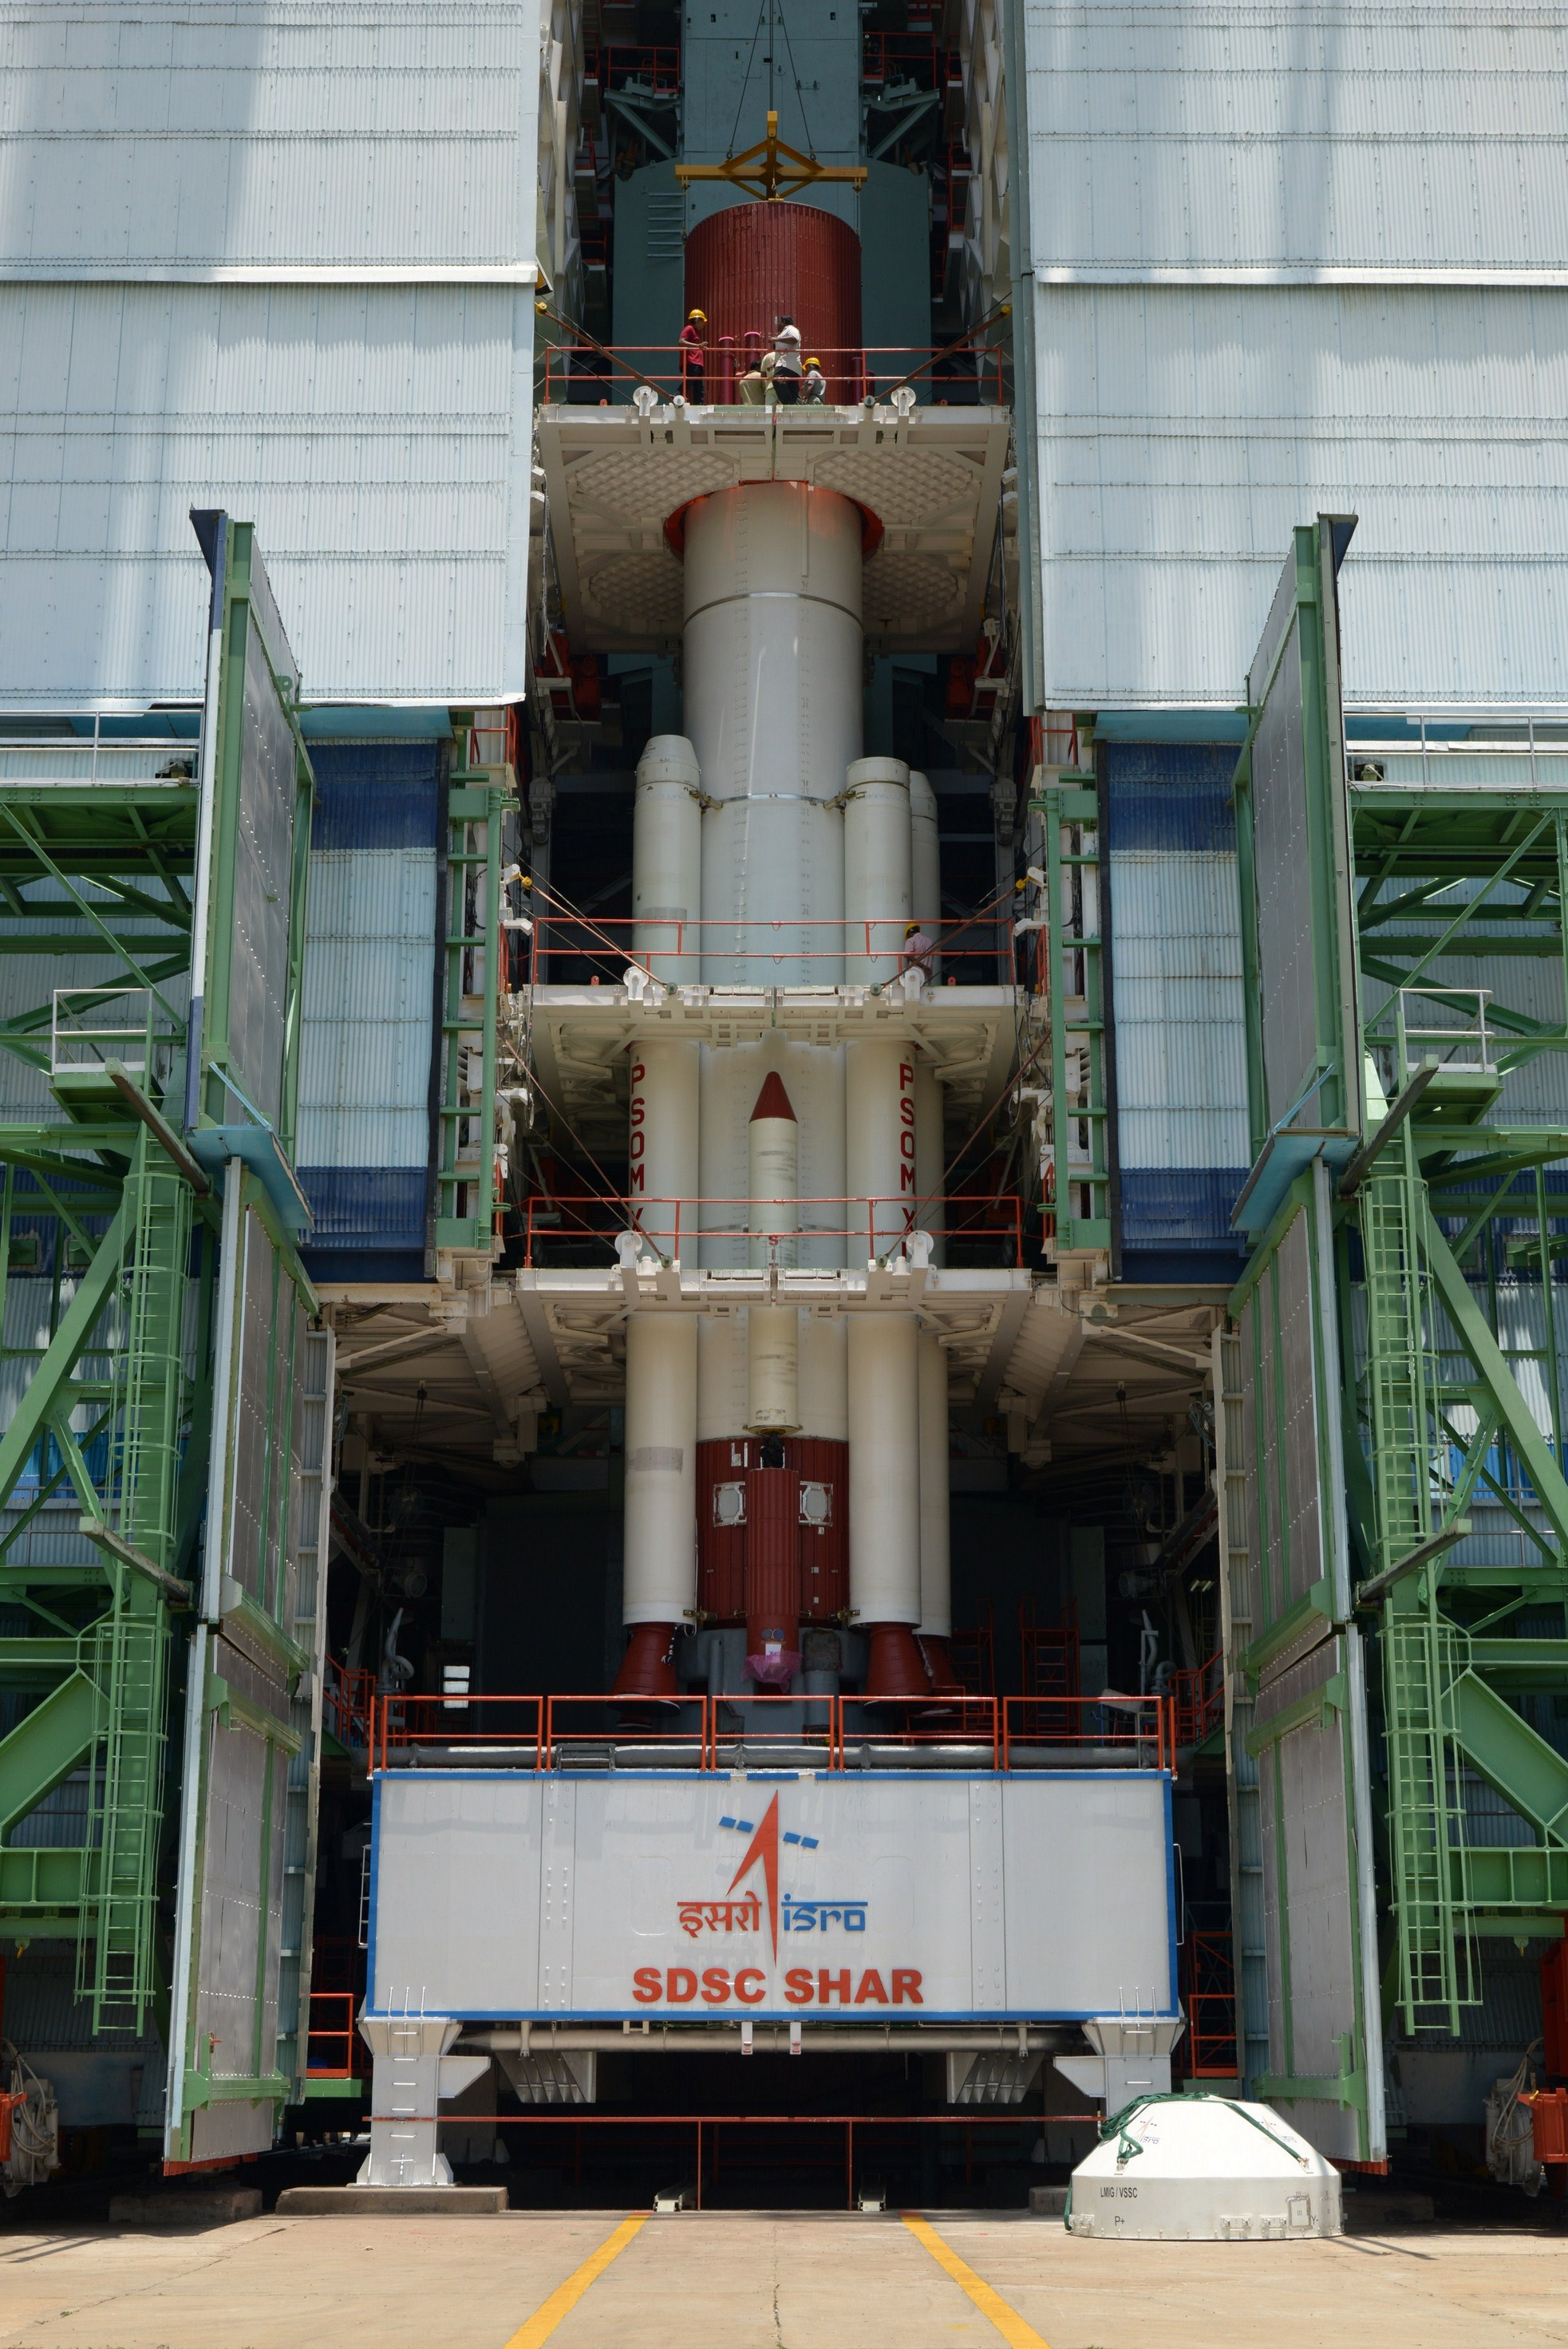 Fully integrated PSLV-C30 core stage with strap-ons at the mobile service tower.